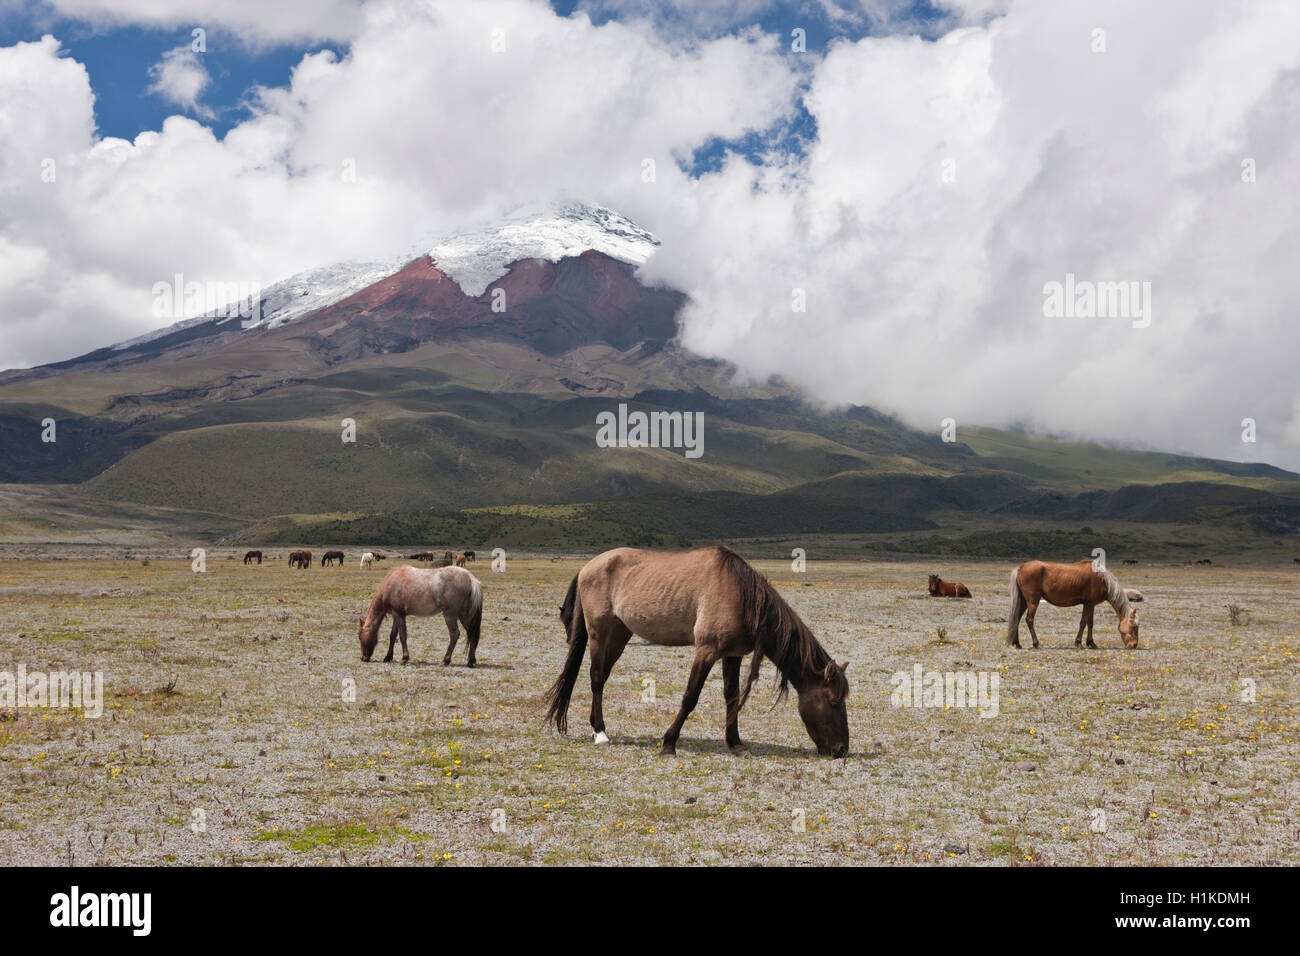 Wild Horses grazing near Cotopaxi, Cotopaxi National Park, Ecuador Stock Photo